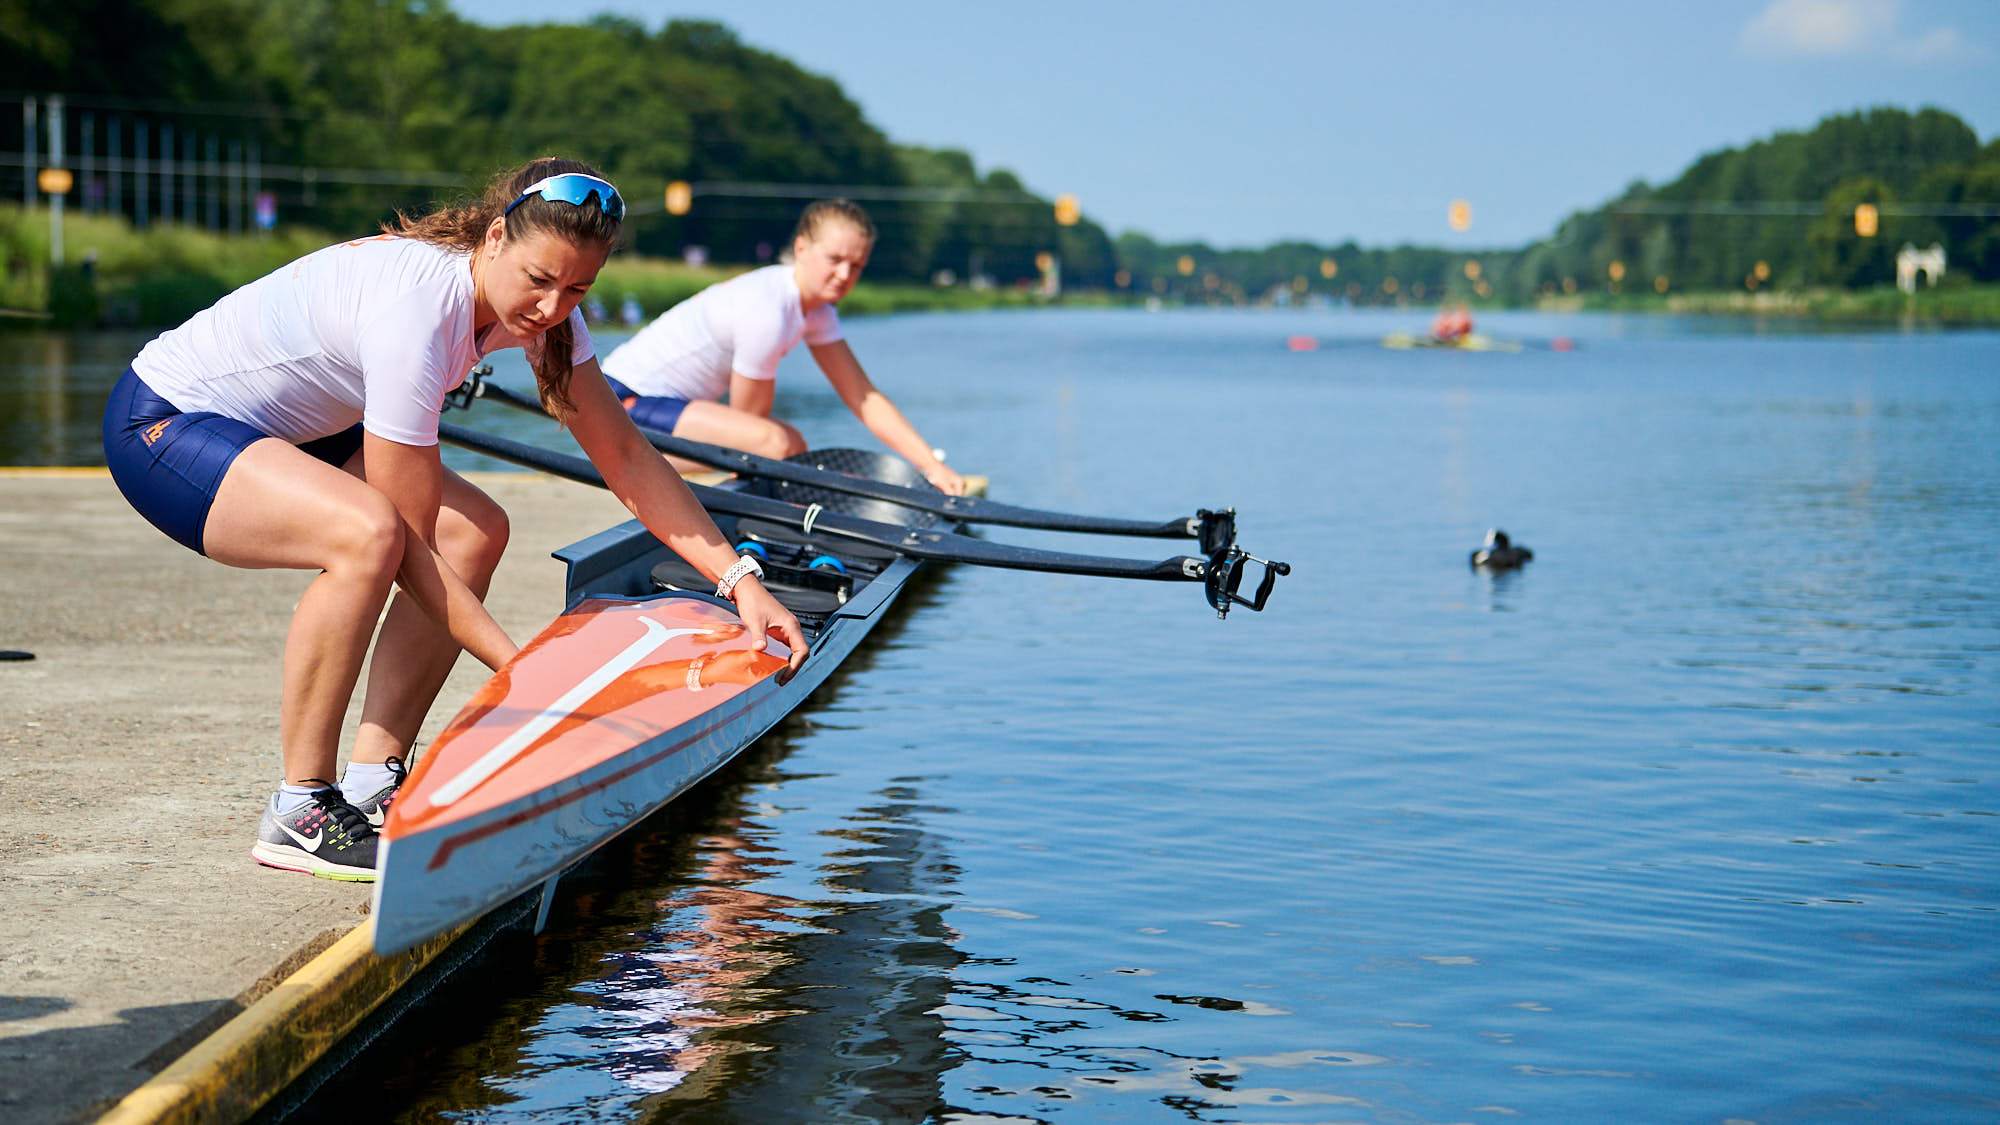 Ilse Paulis and Marieke Keijser lowering their boat in the water